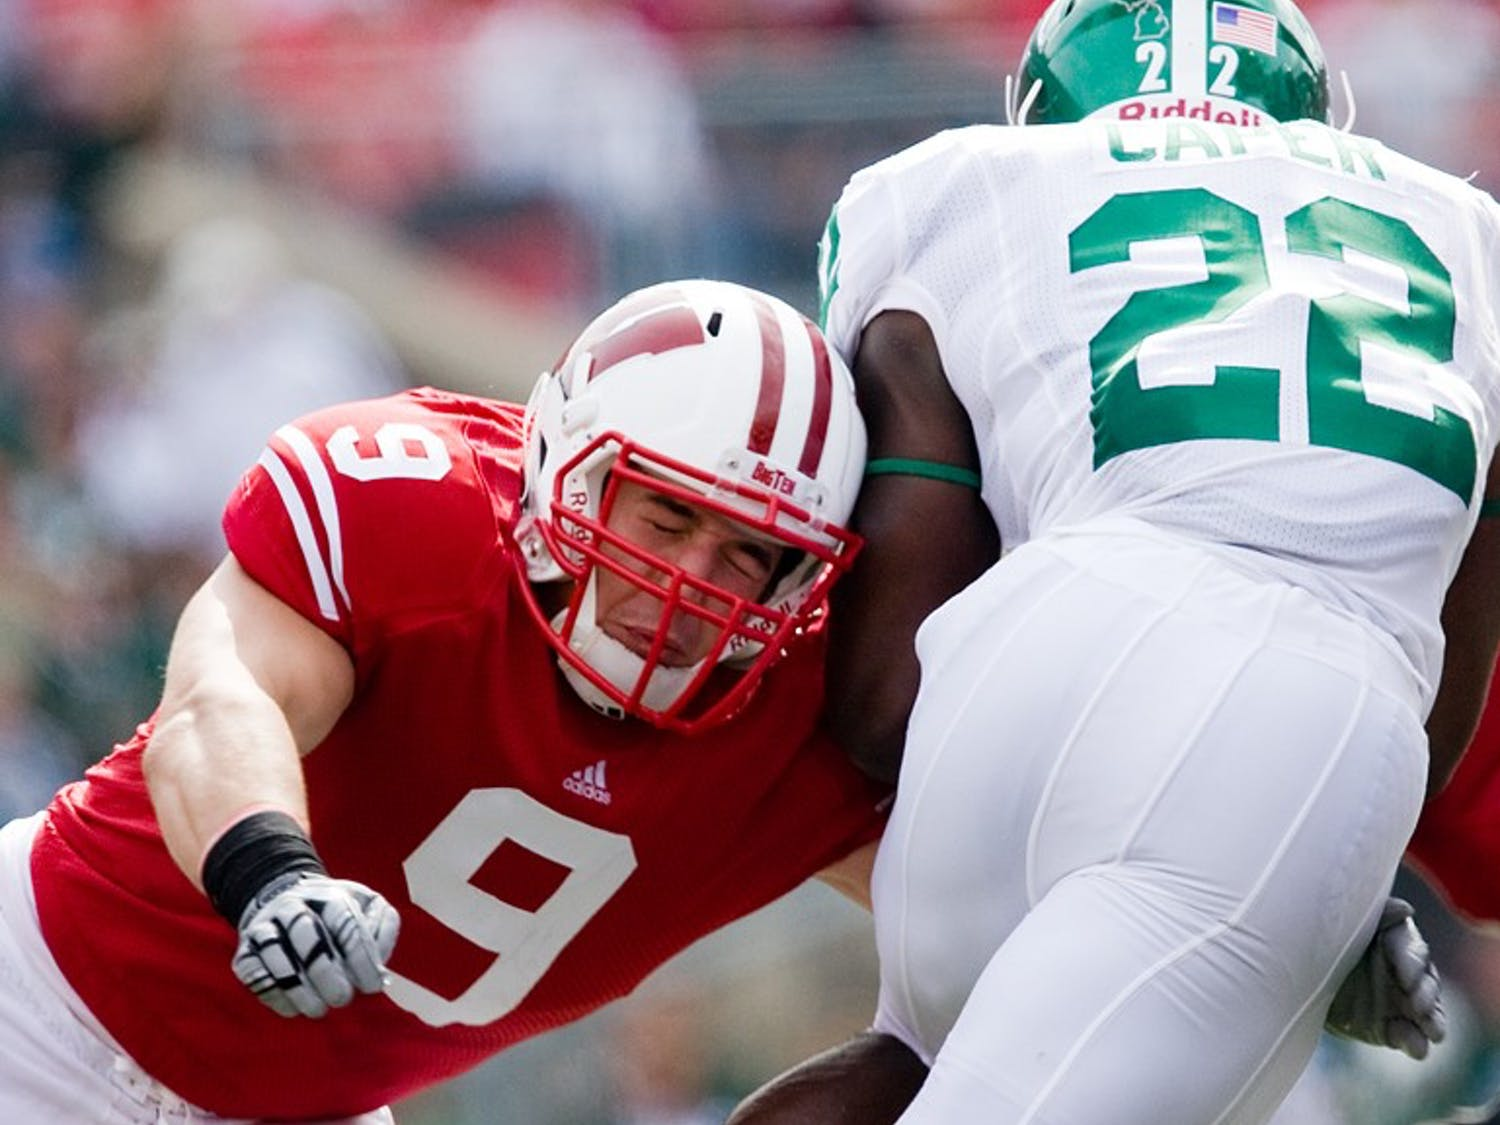 Badgers hope to retain the Axe